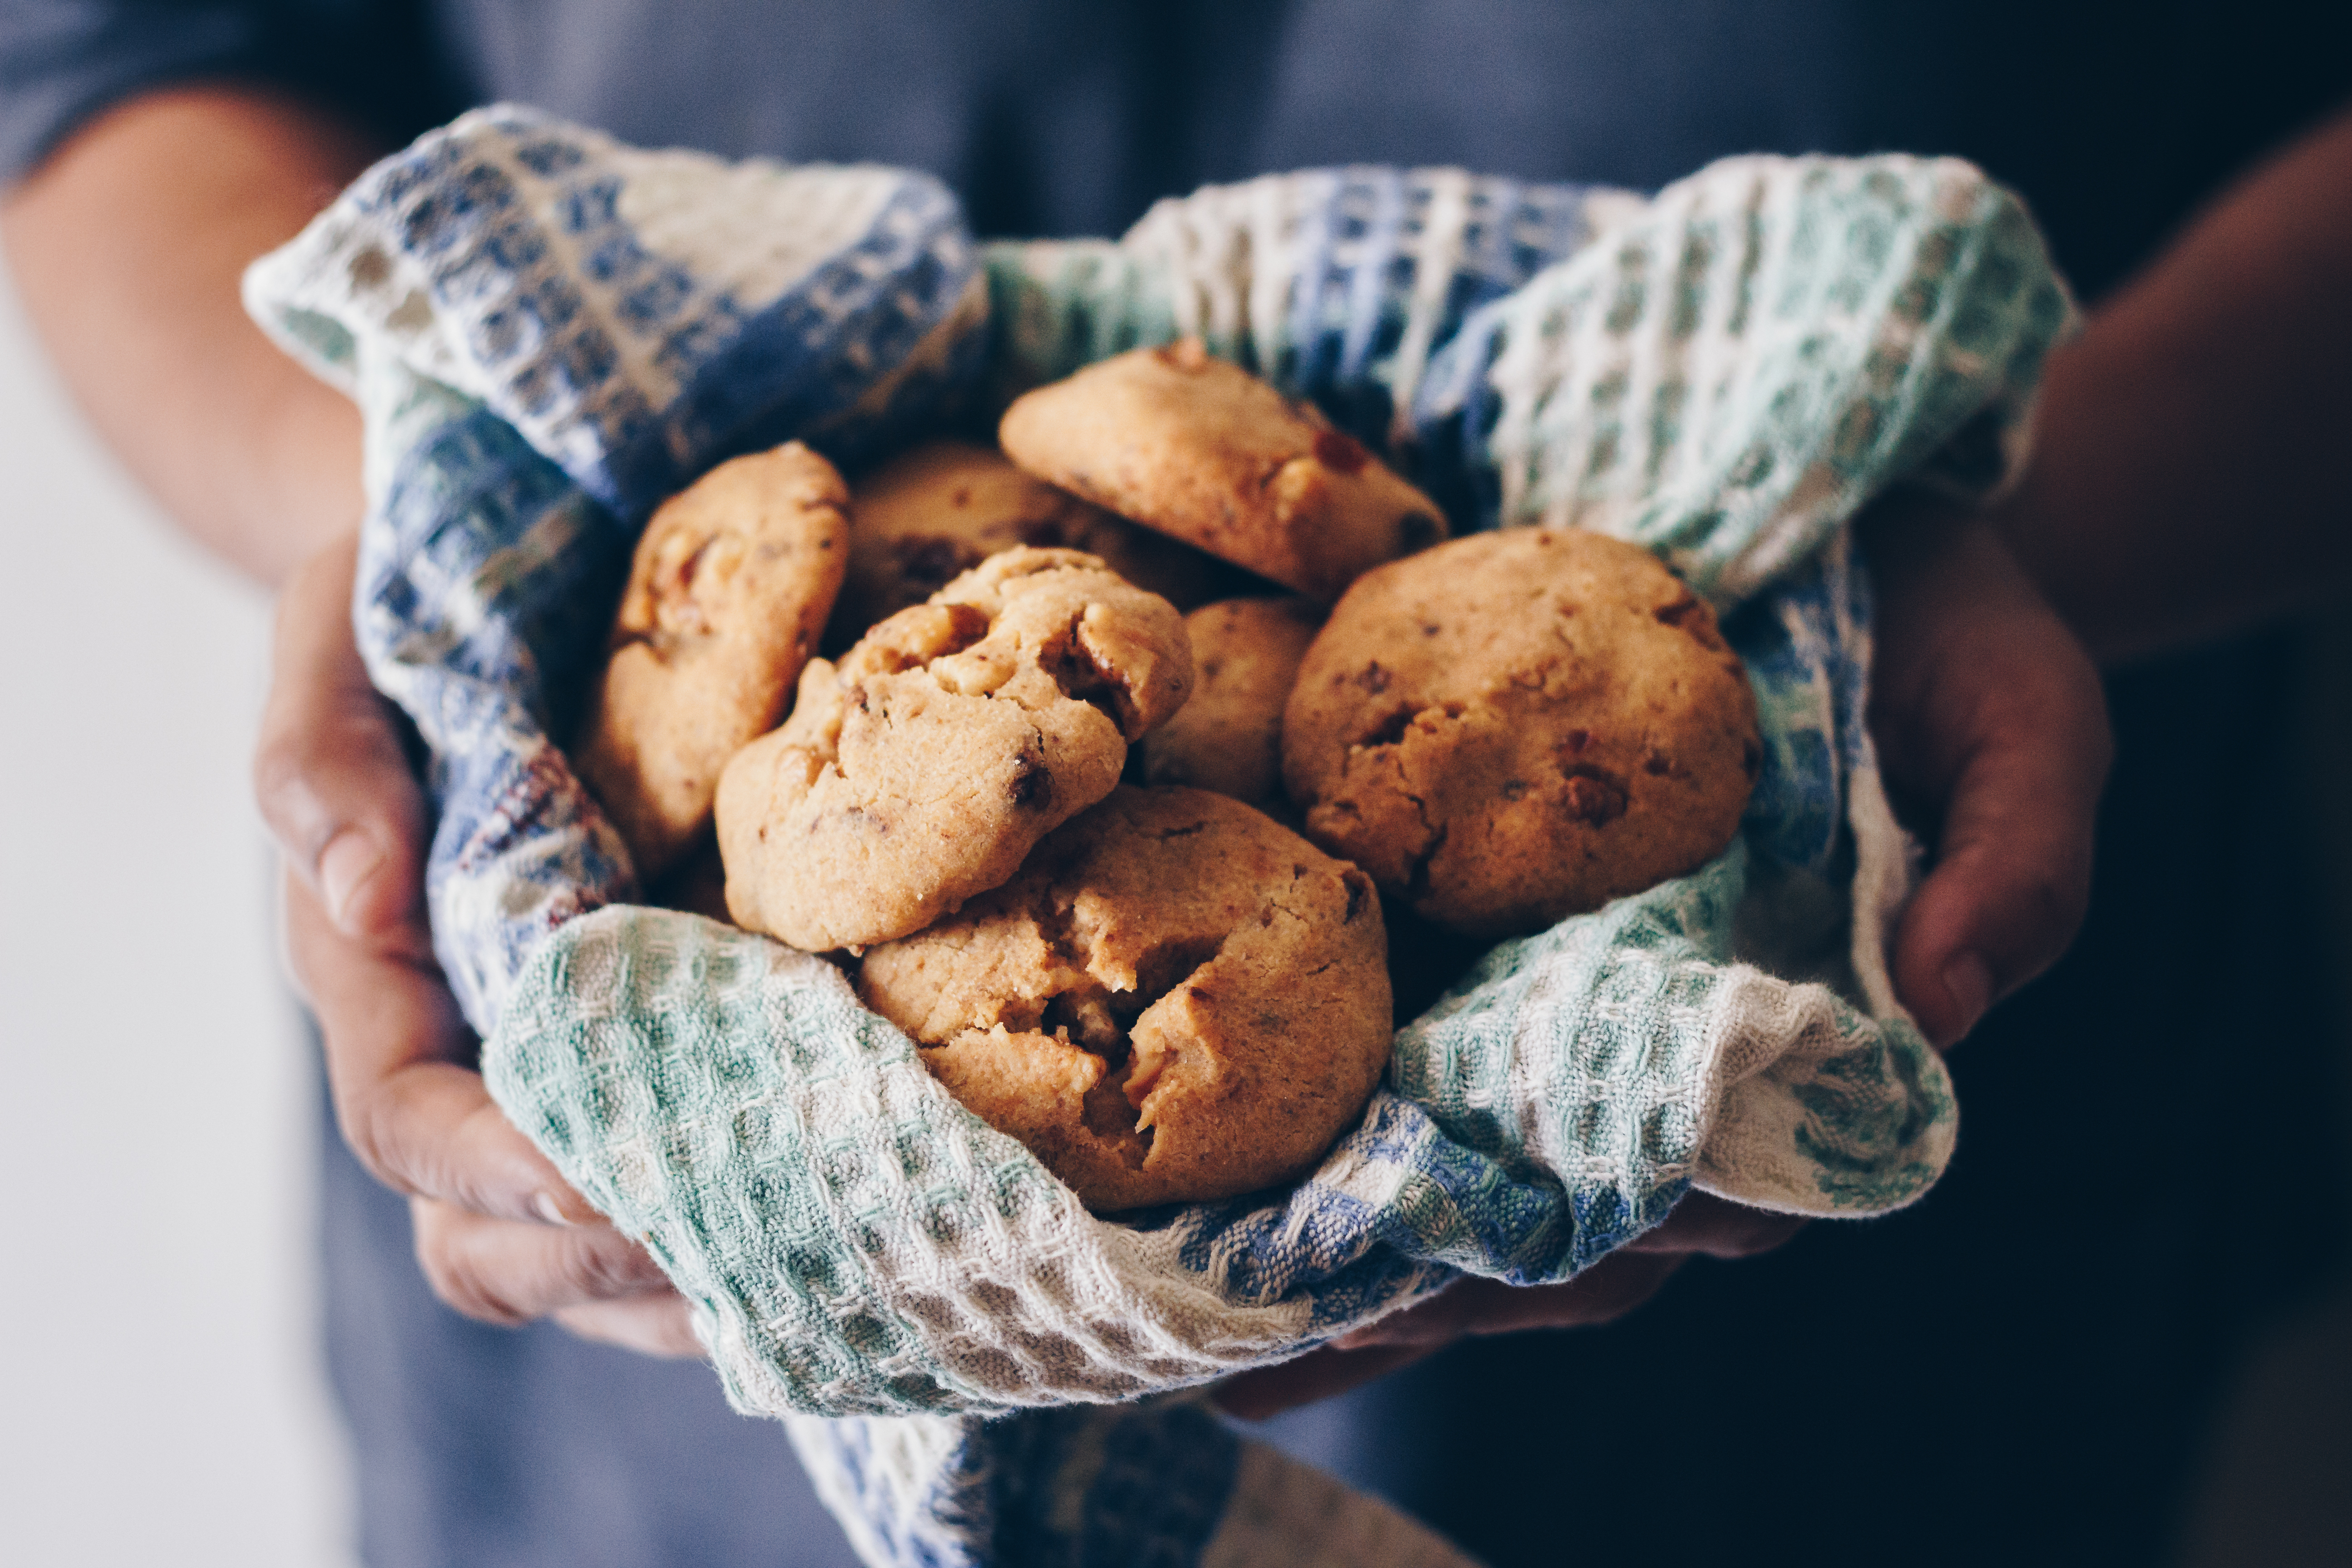 Two hands hold a basket of cookies. The basket is lined with a white and blue checkered cloth.